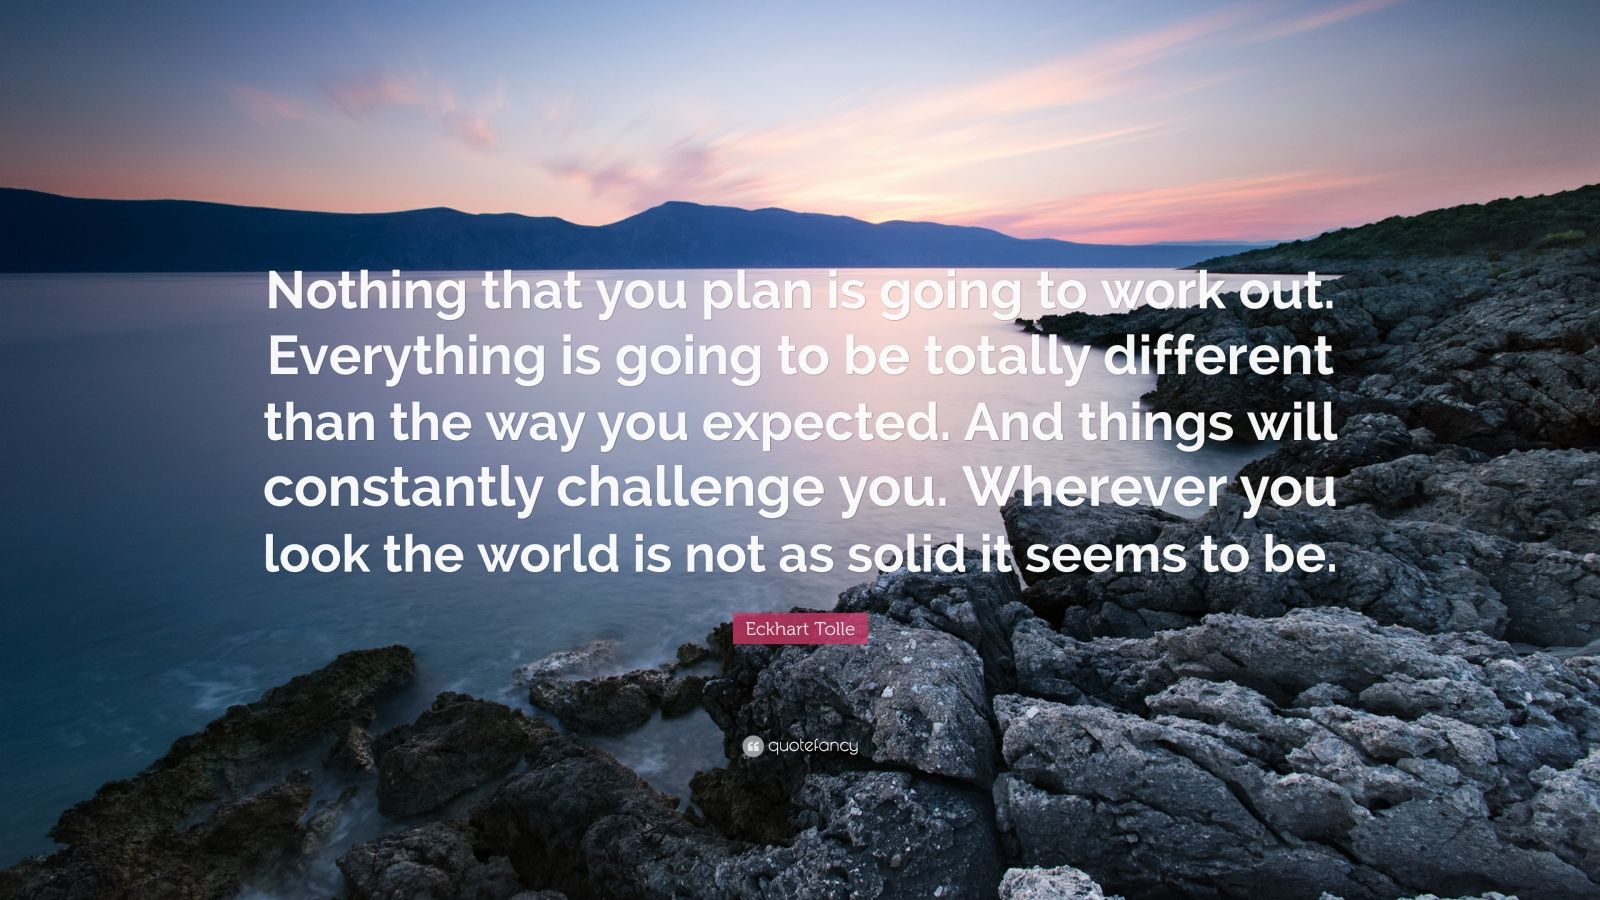 "Eckhart Tolle Quote: ""Nothing that you plan is going to work out. Everything is going to be totally different than the way you expected. And things will constantly challenge you. Wherever you look the world is not as solid it seems to be."""